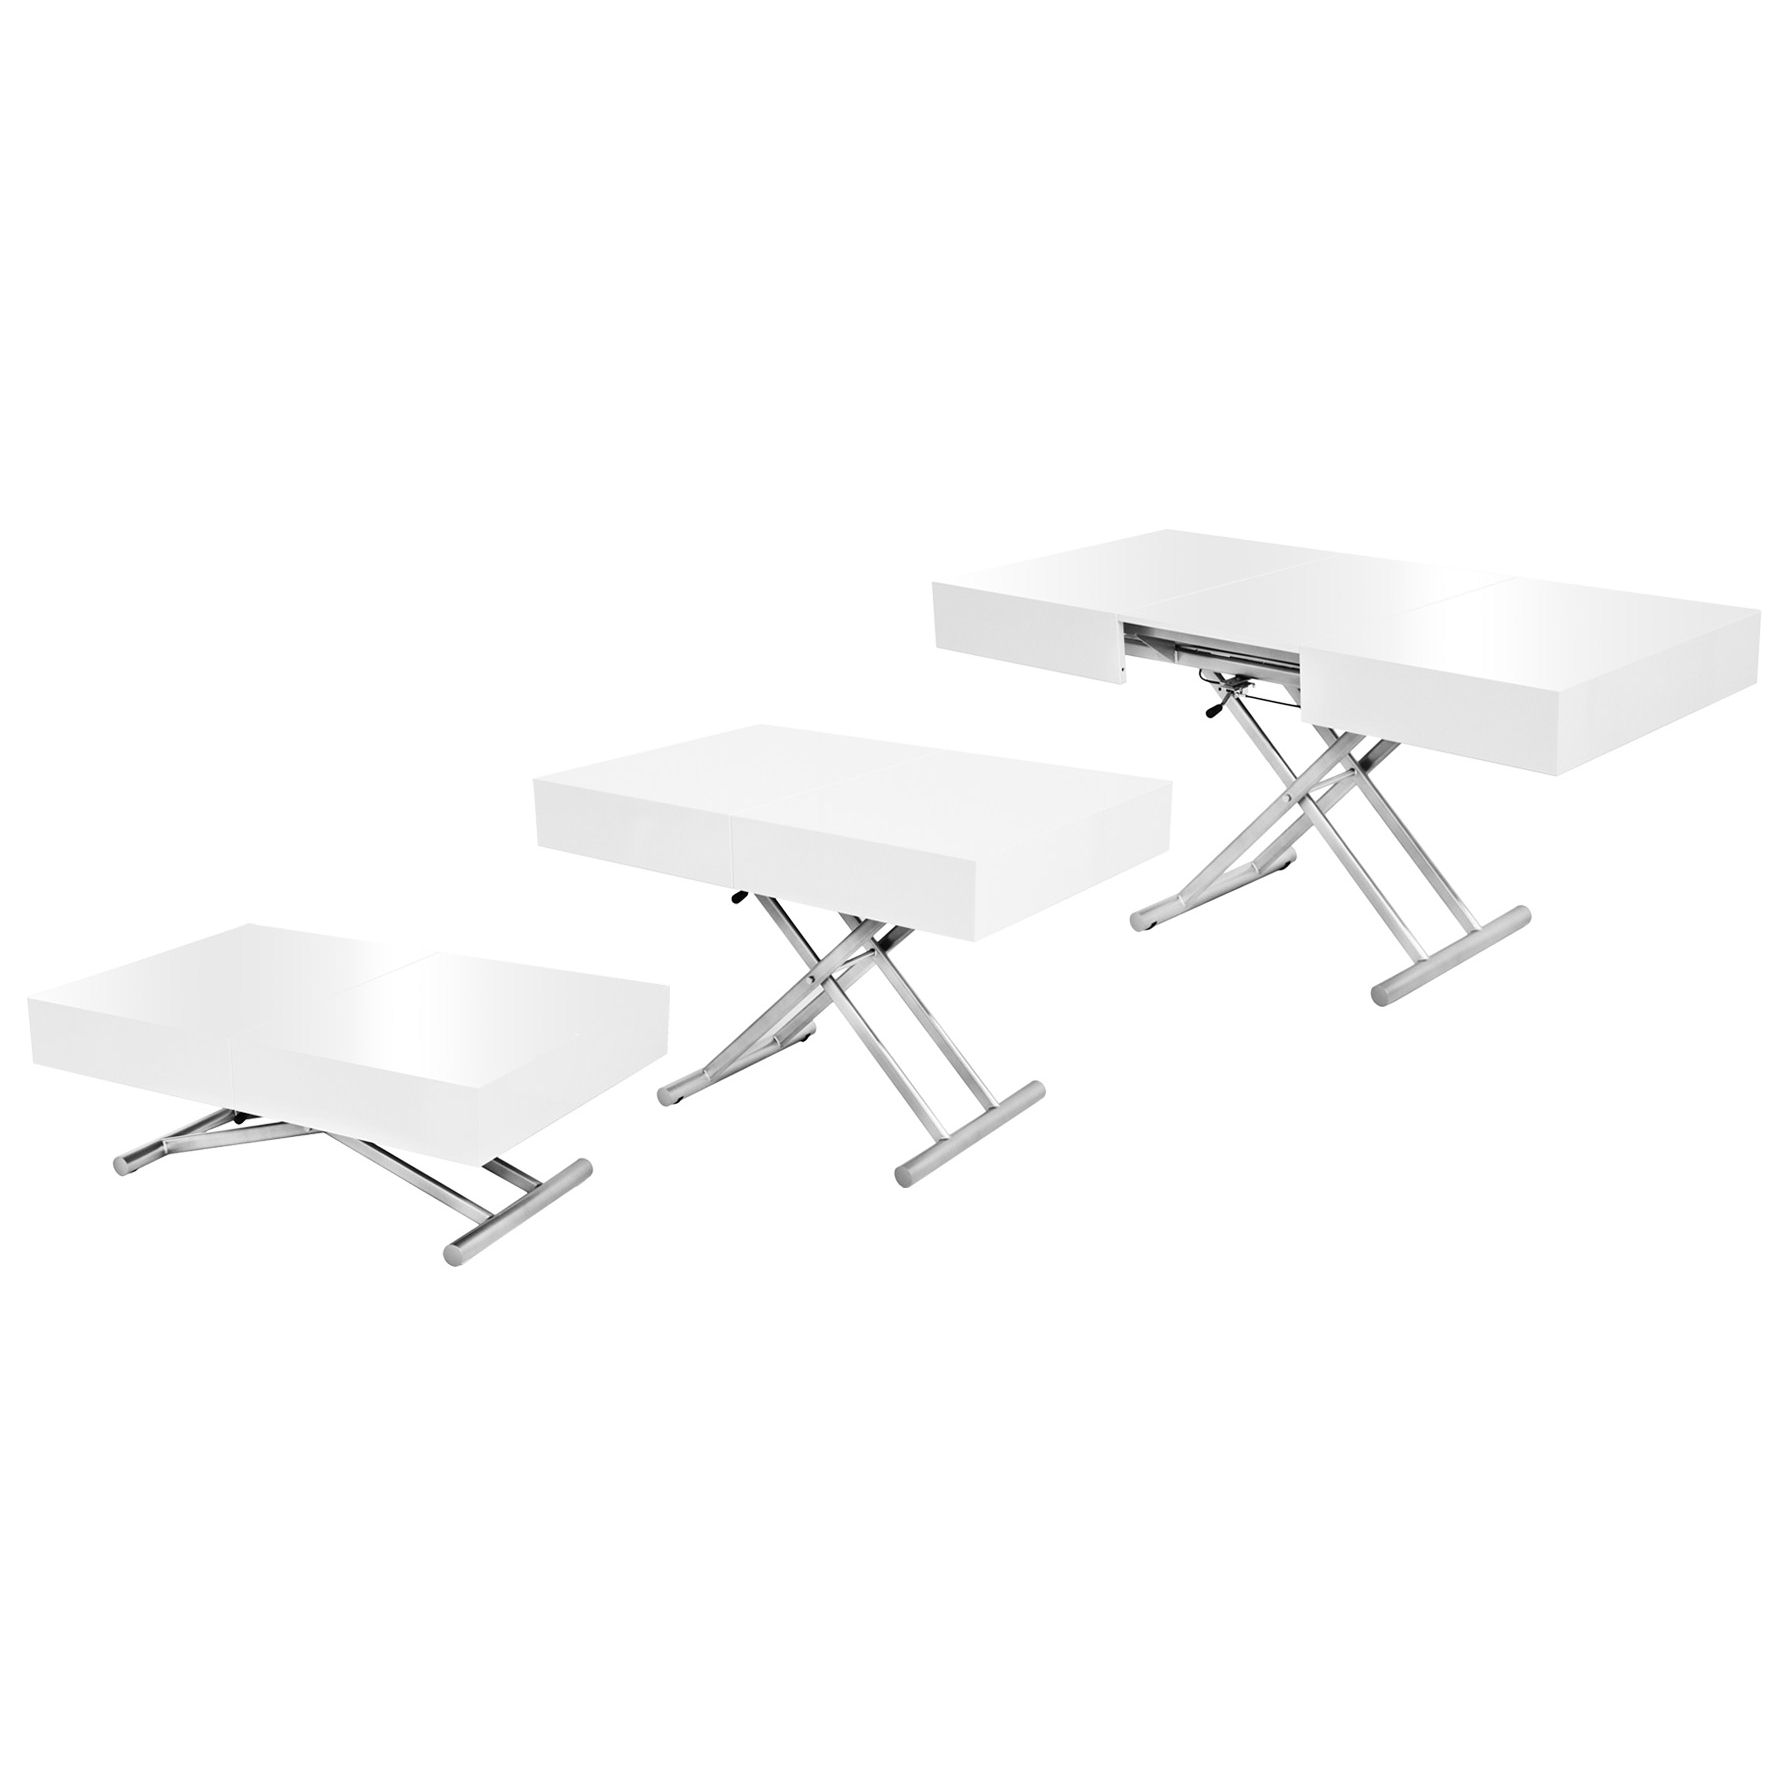 Table basse relevable le bon coin - Table basse transformable en table a manger ...